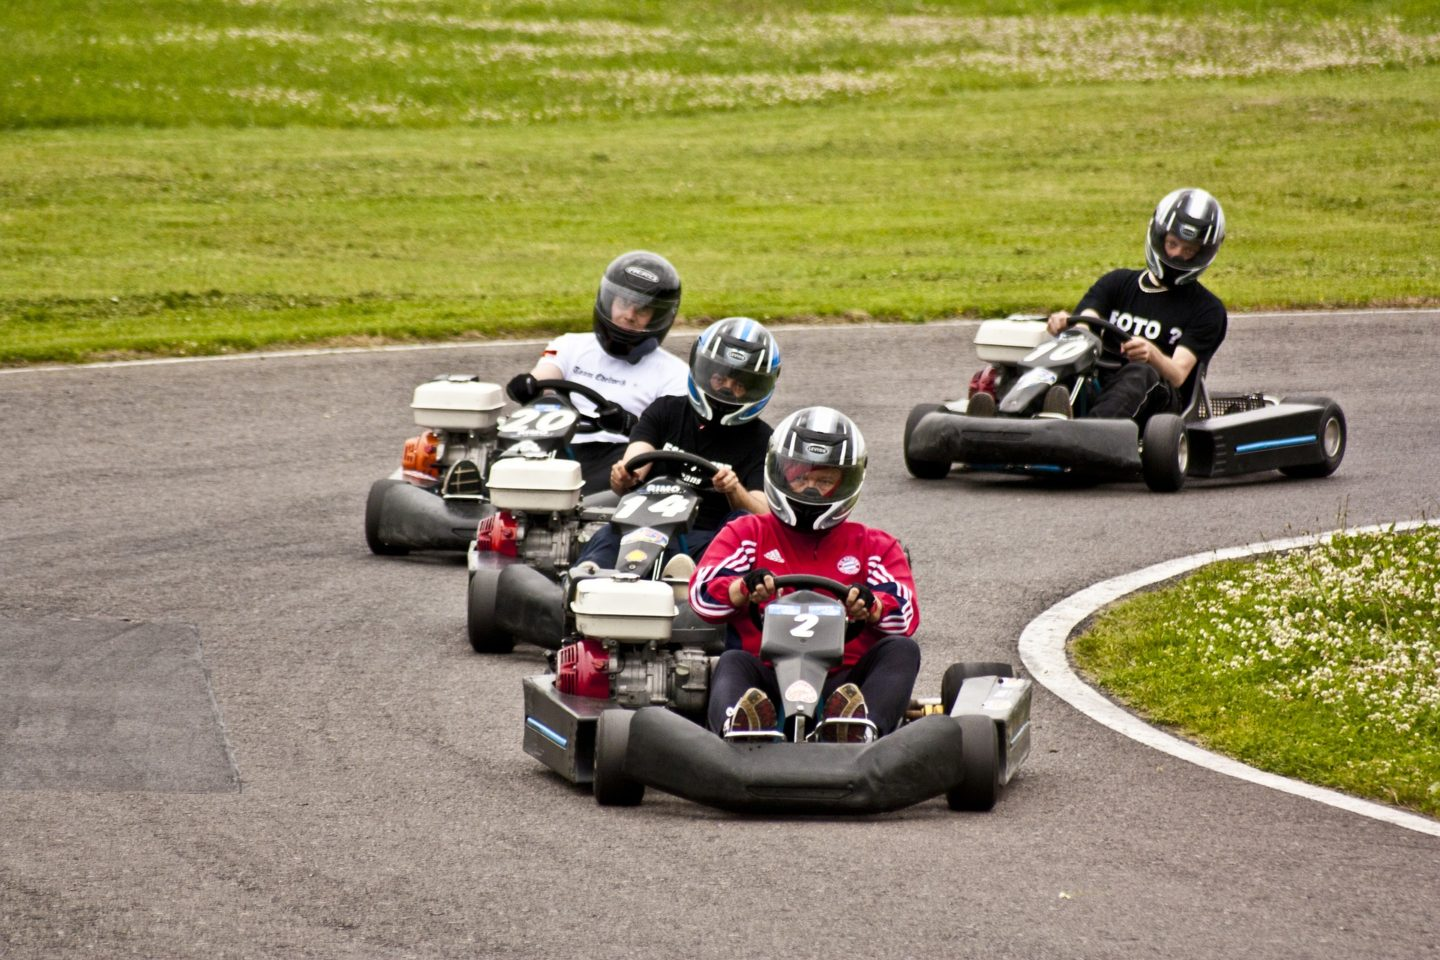 How to find reduced prices for go karting centres